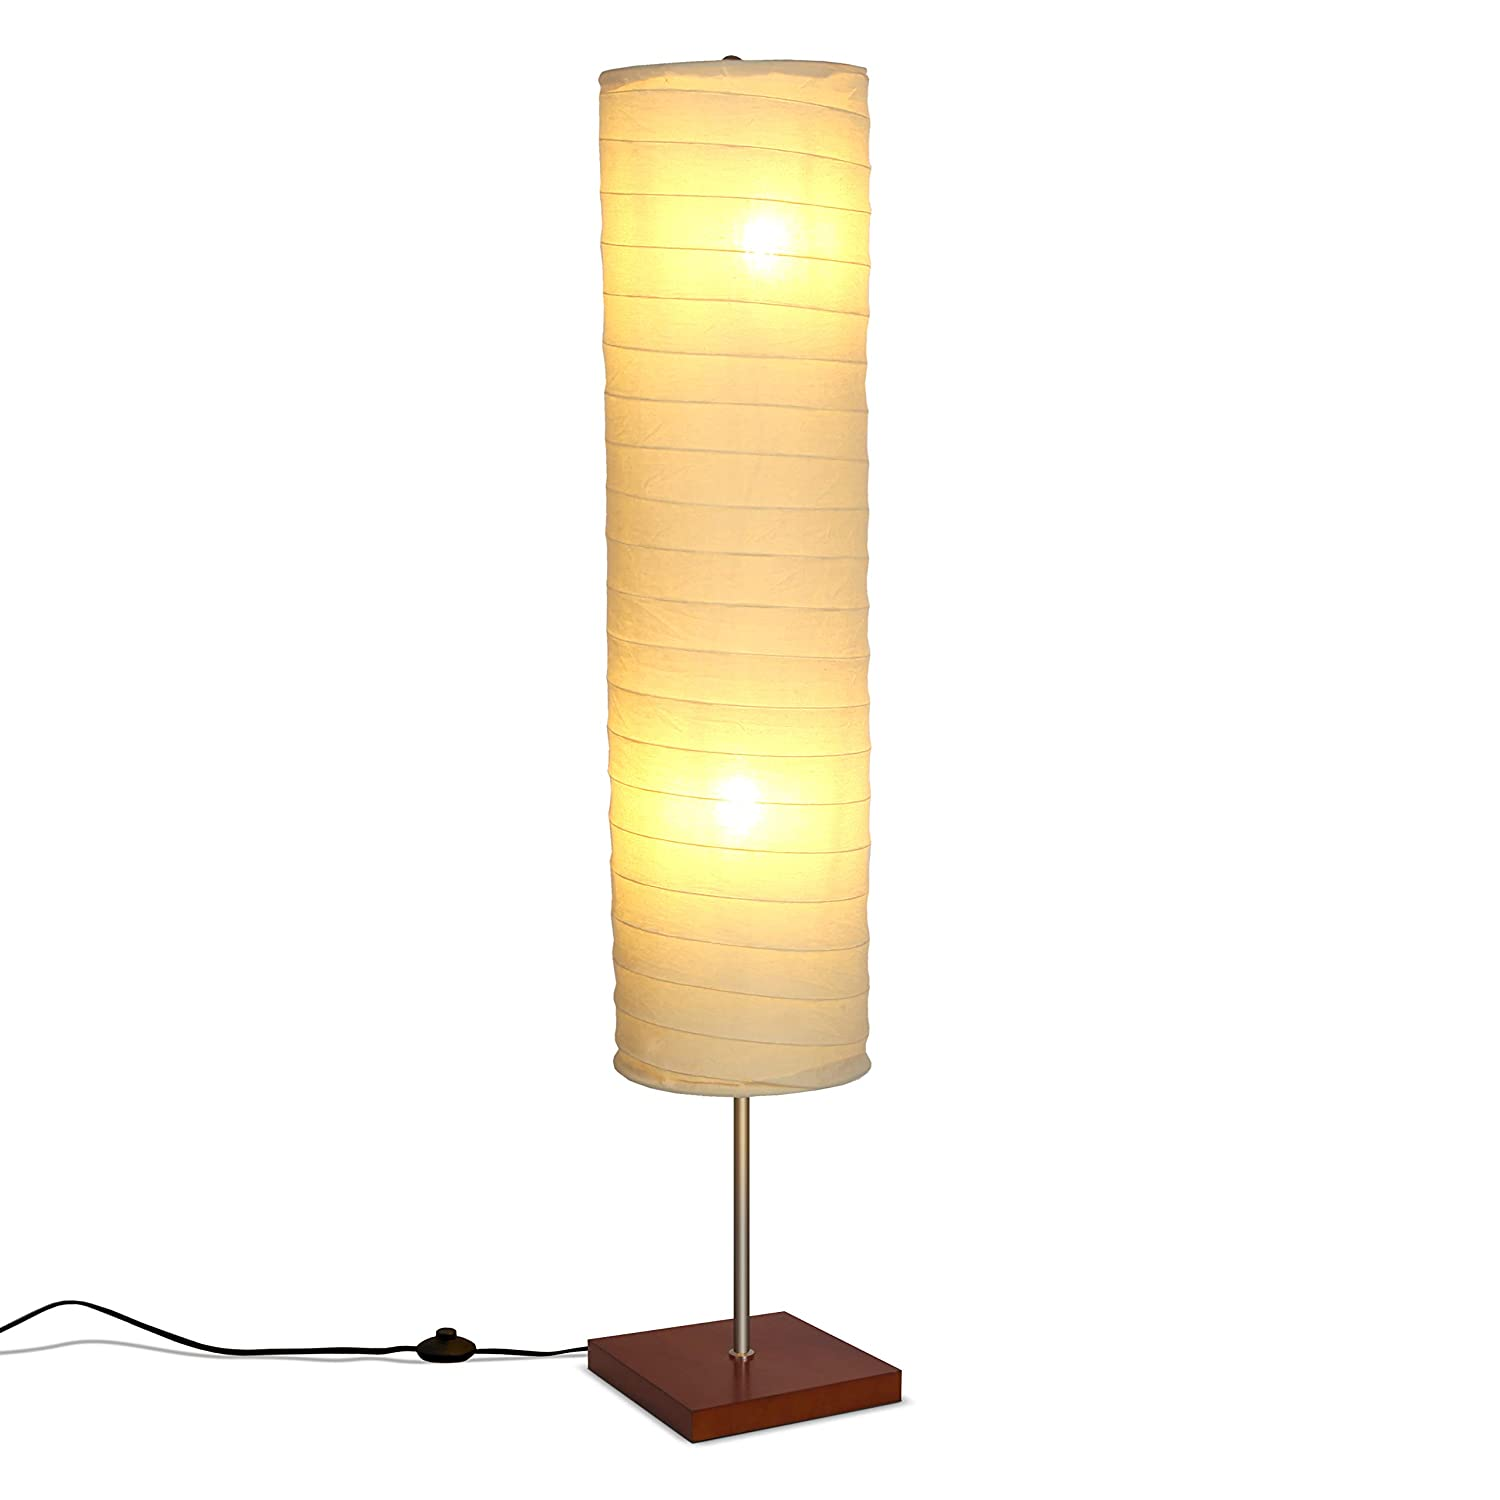 Brightech – Serenity LED Floor Lamp for Living Rooms Bedrooms Mid Century Modern Minimalist, Ambient Light Perfect for Beside The Bed or Office, Corner Lamp – Havana Brown